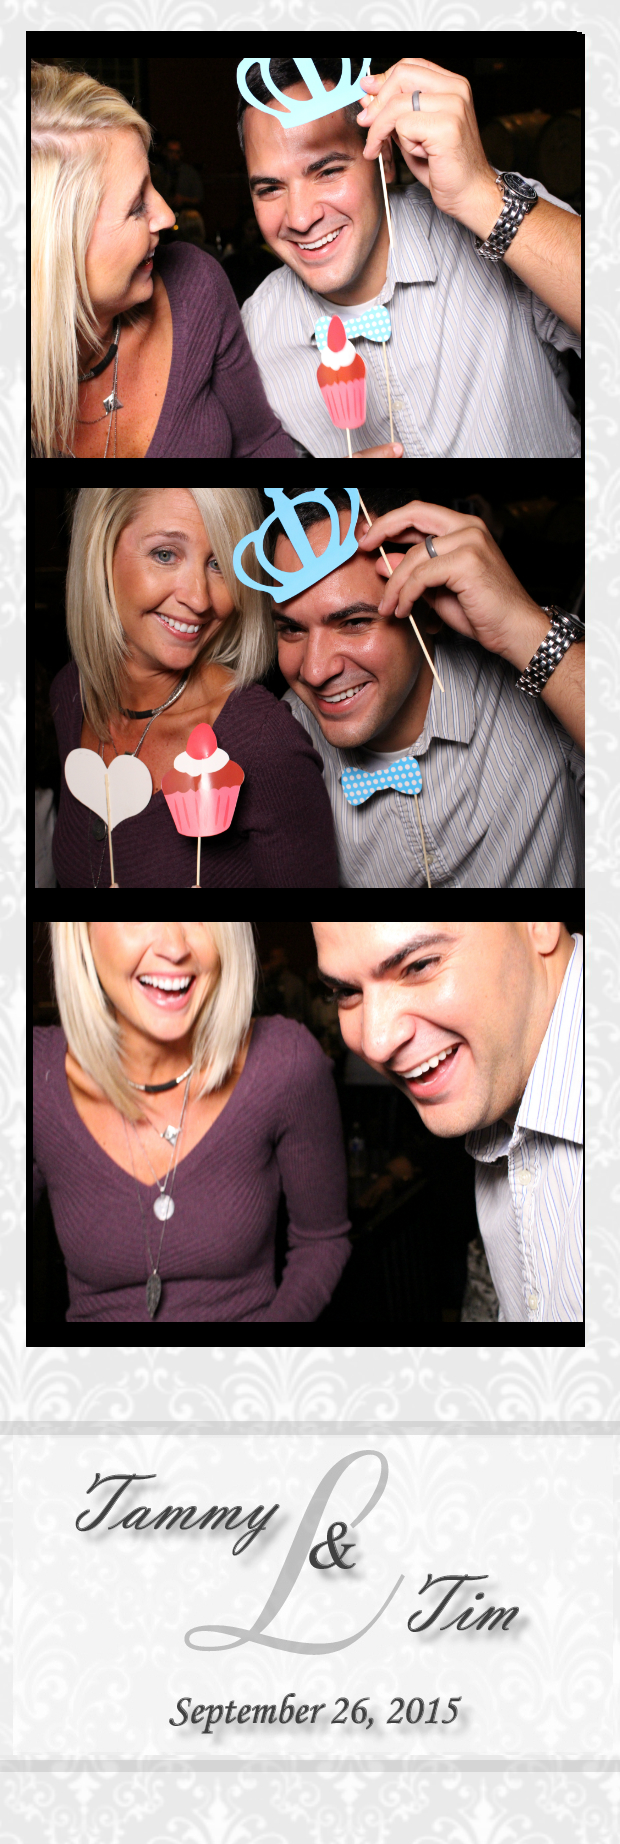 Guest House Events Photo Booth Strips T&T (23).jpg